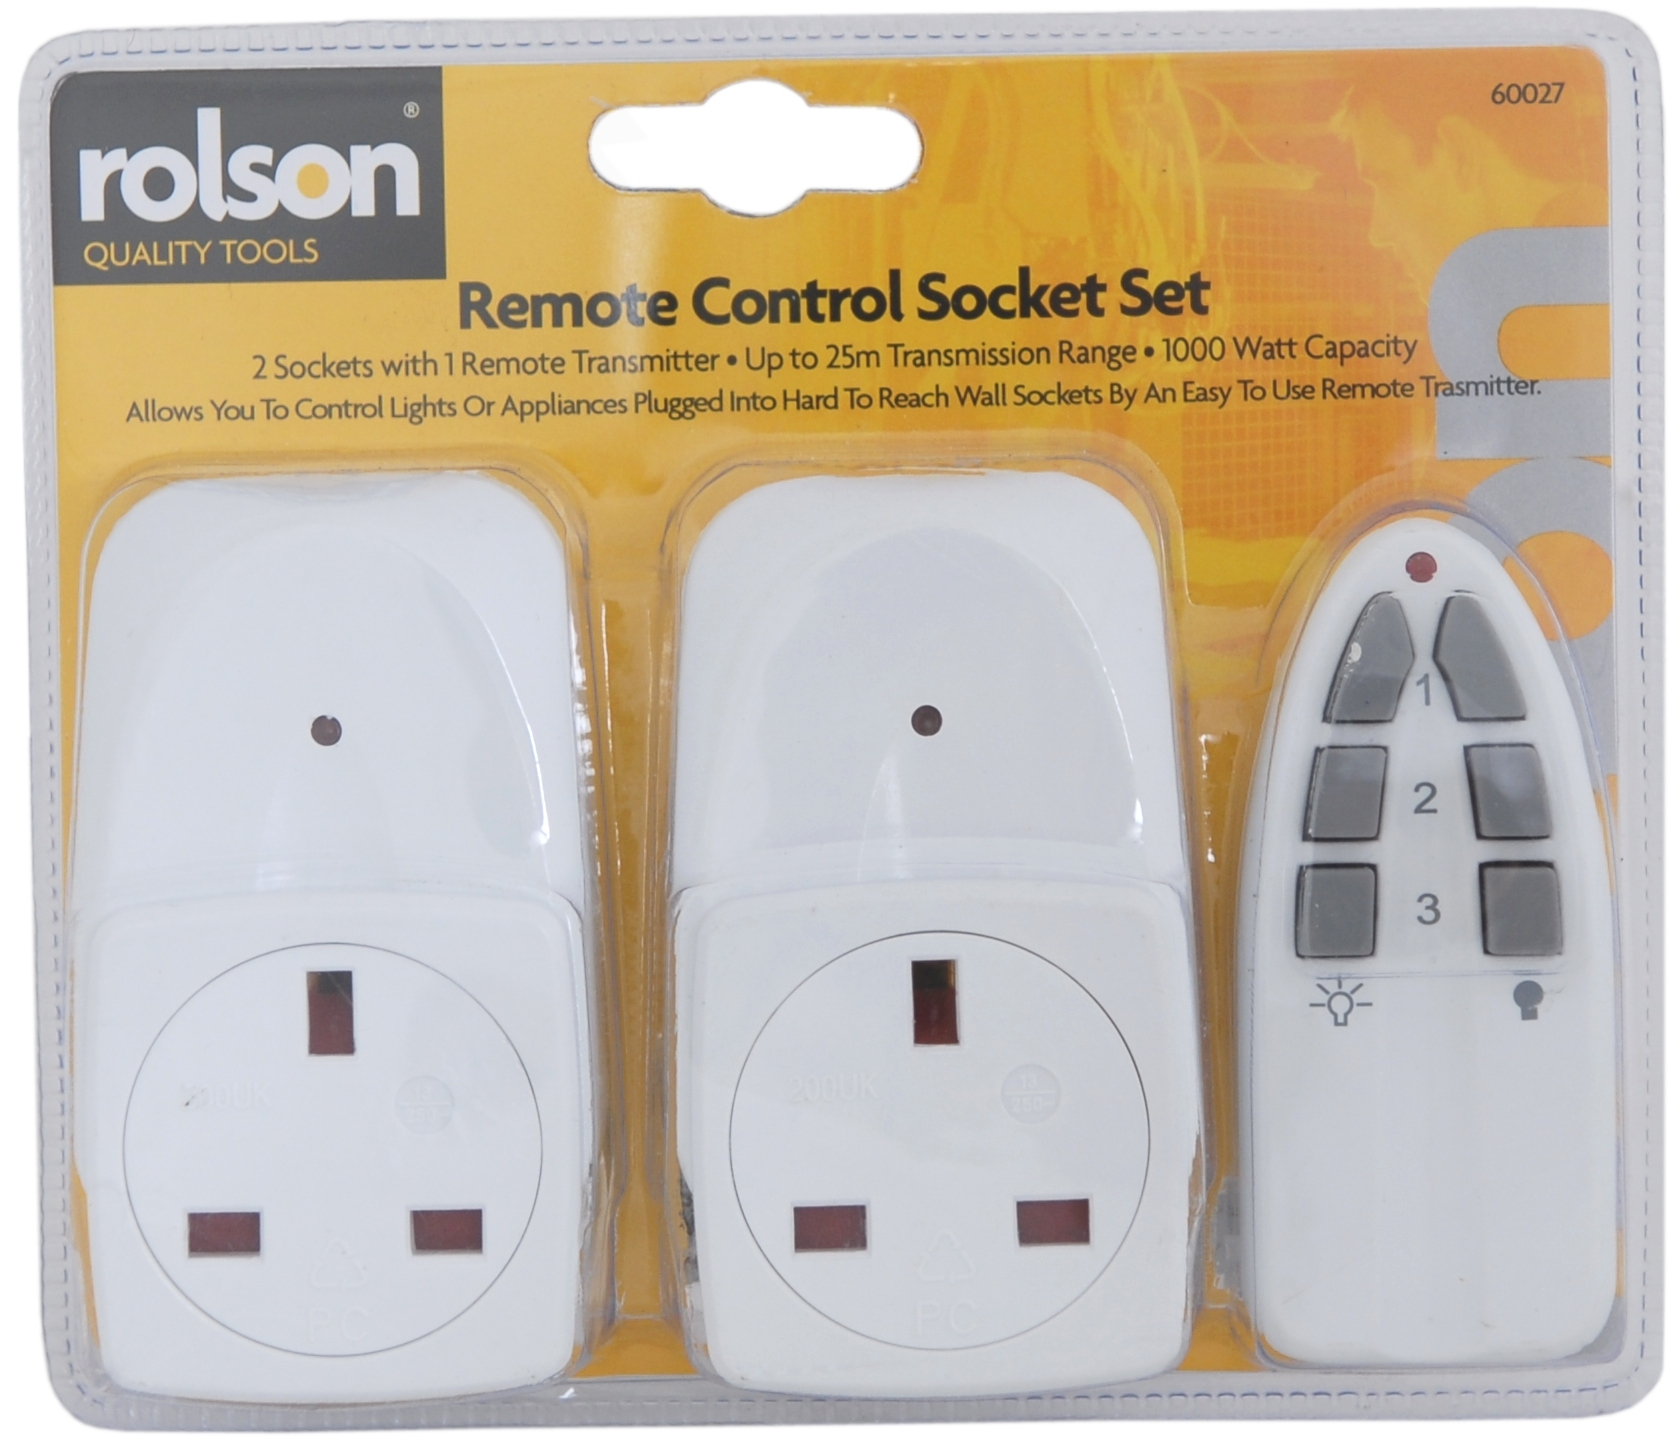 rolson set  Remote Controlled Socket Set Sold By Rolson Tools Recall ...